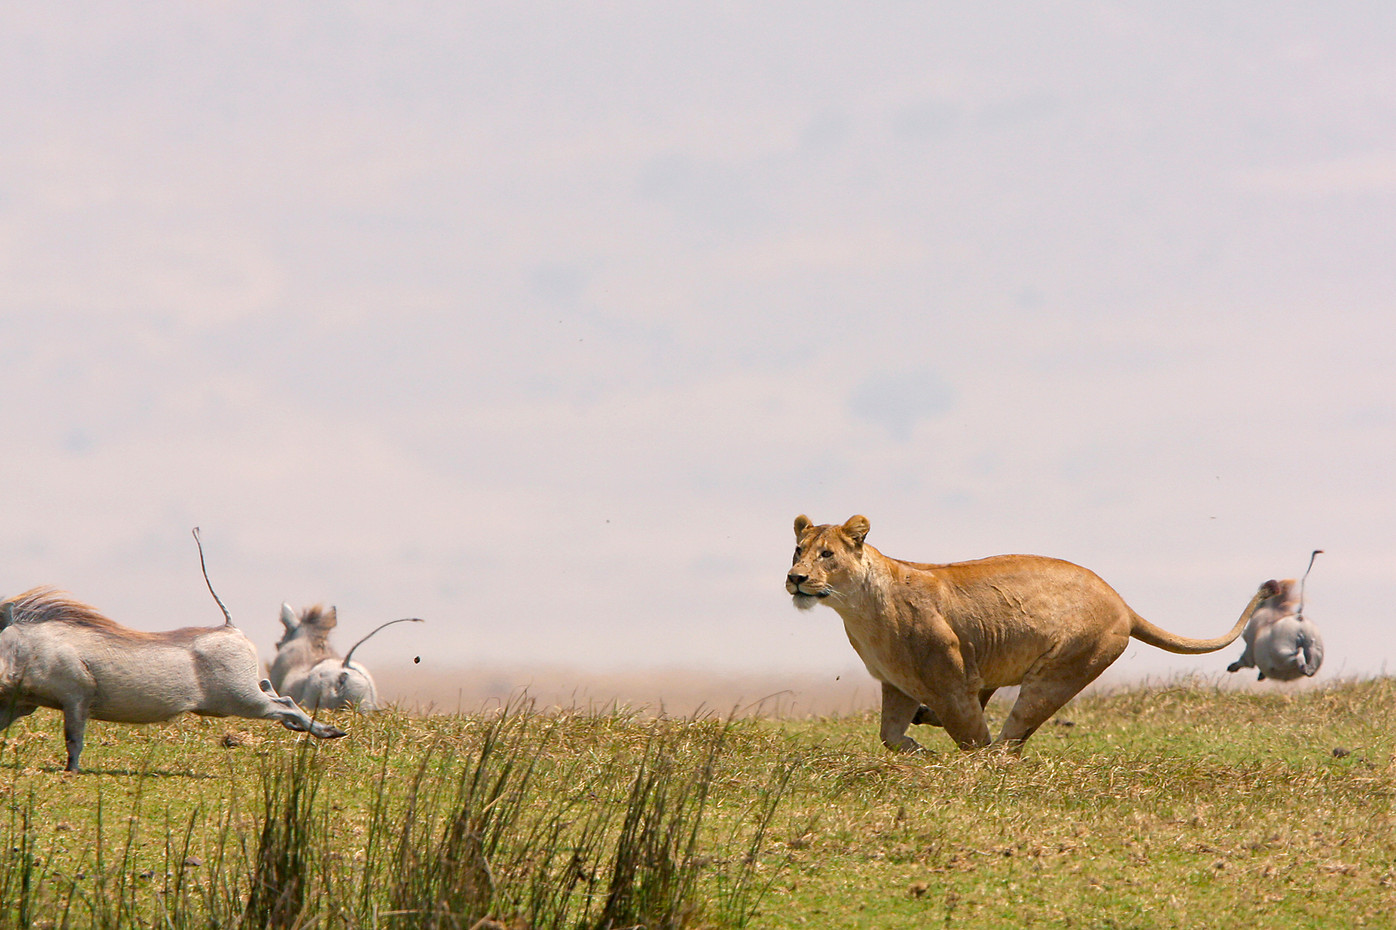 Lioness hunting warthogs in the Ngorongoro Crater, Tanzania